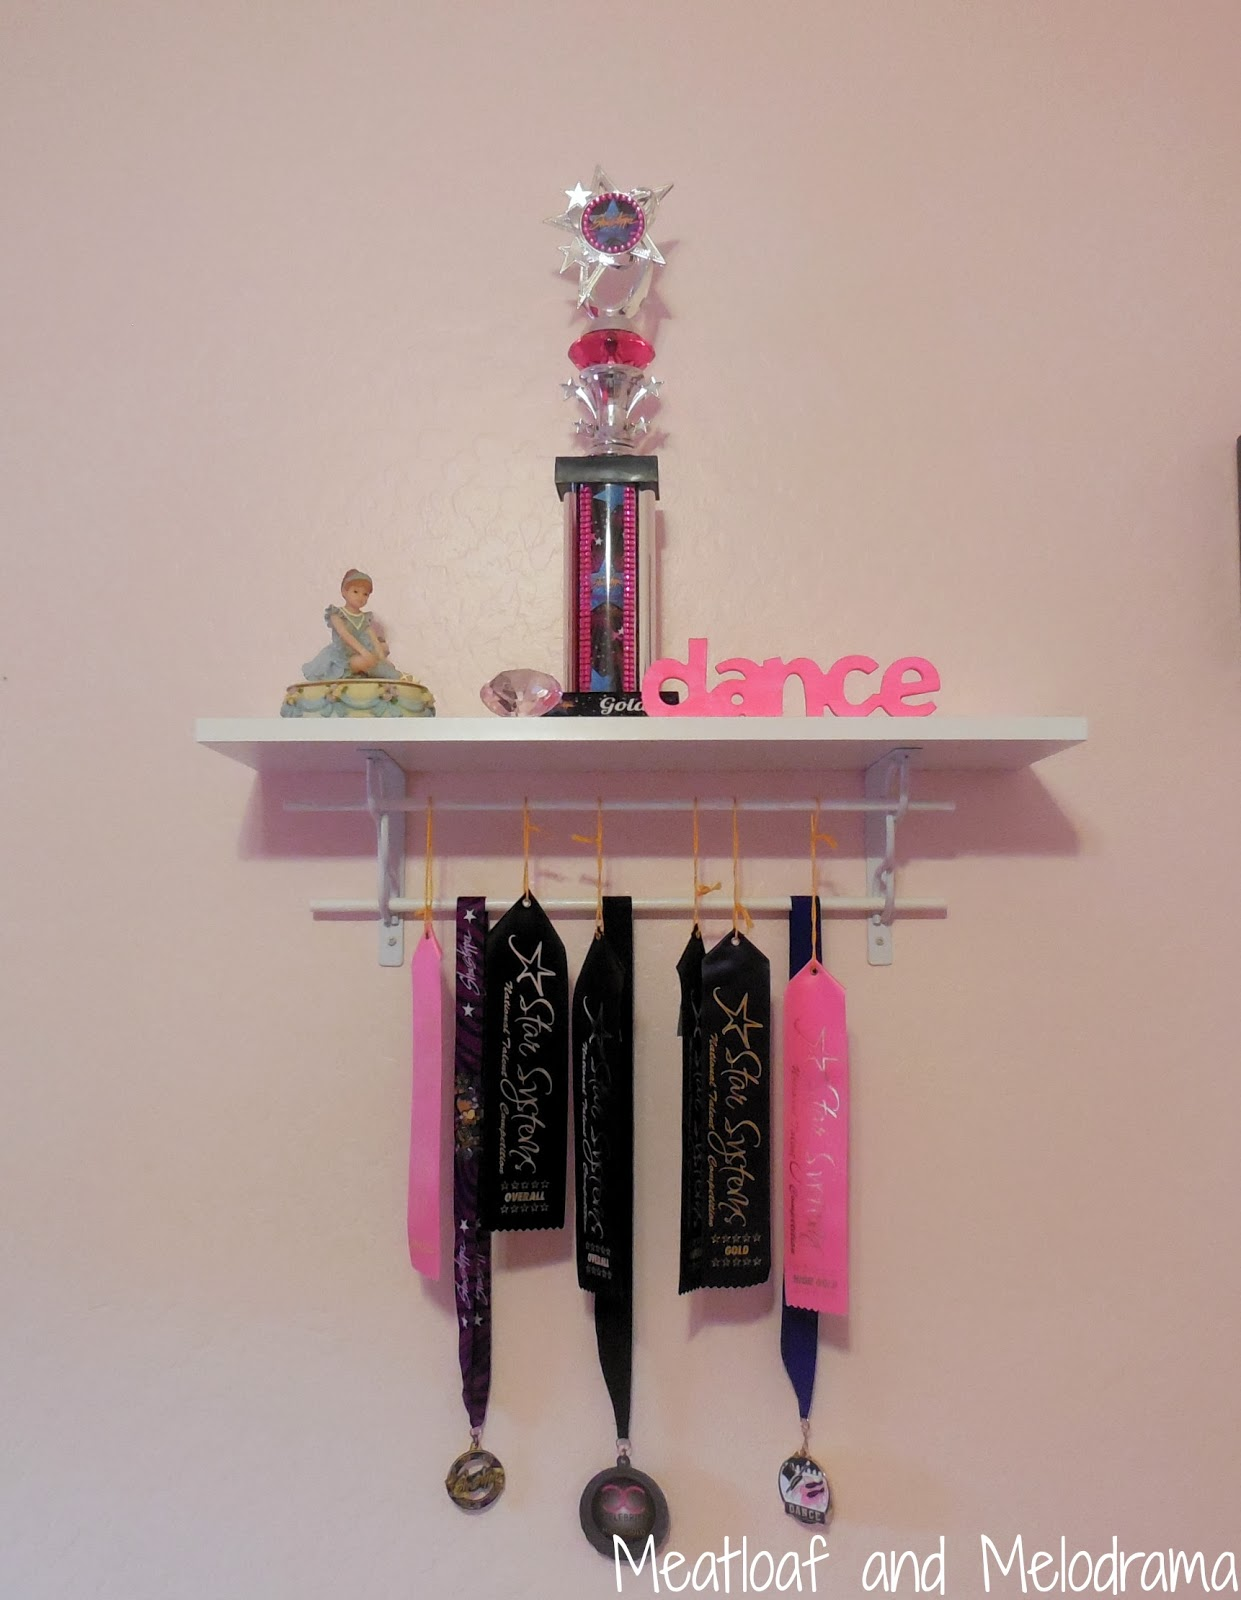 trophy shelf, medals, dance awards